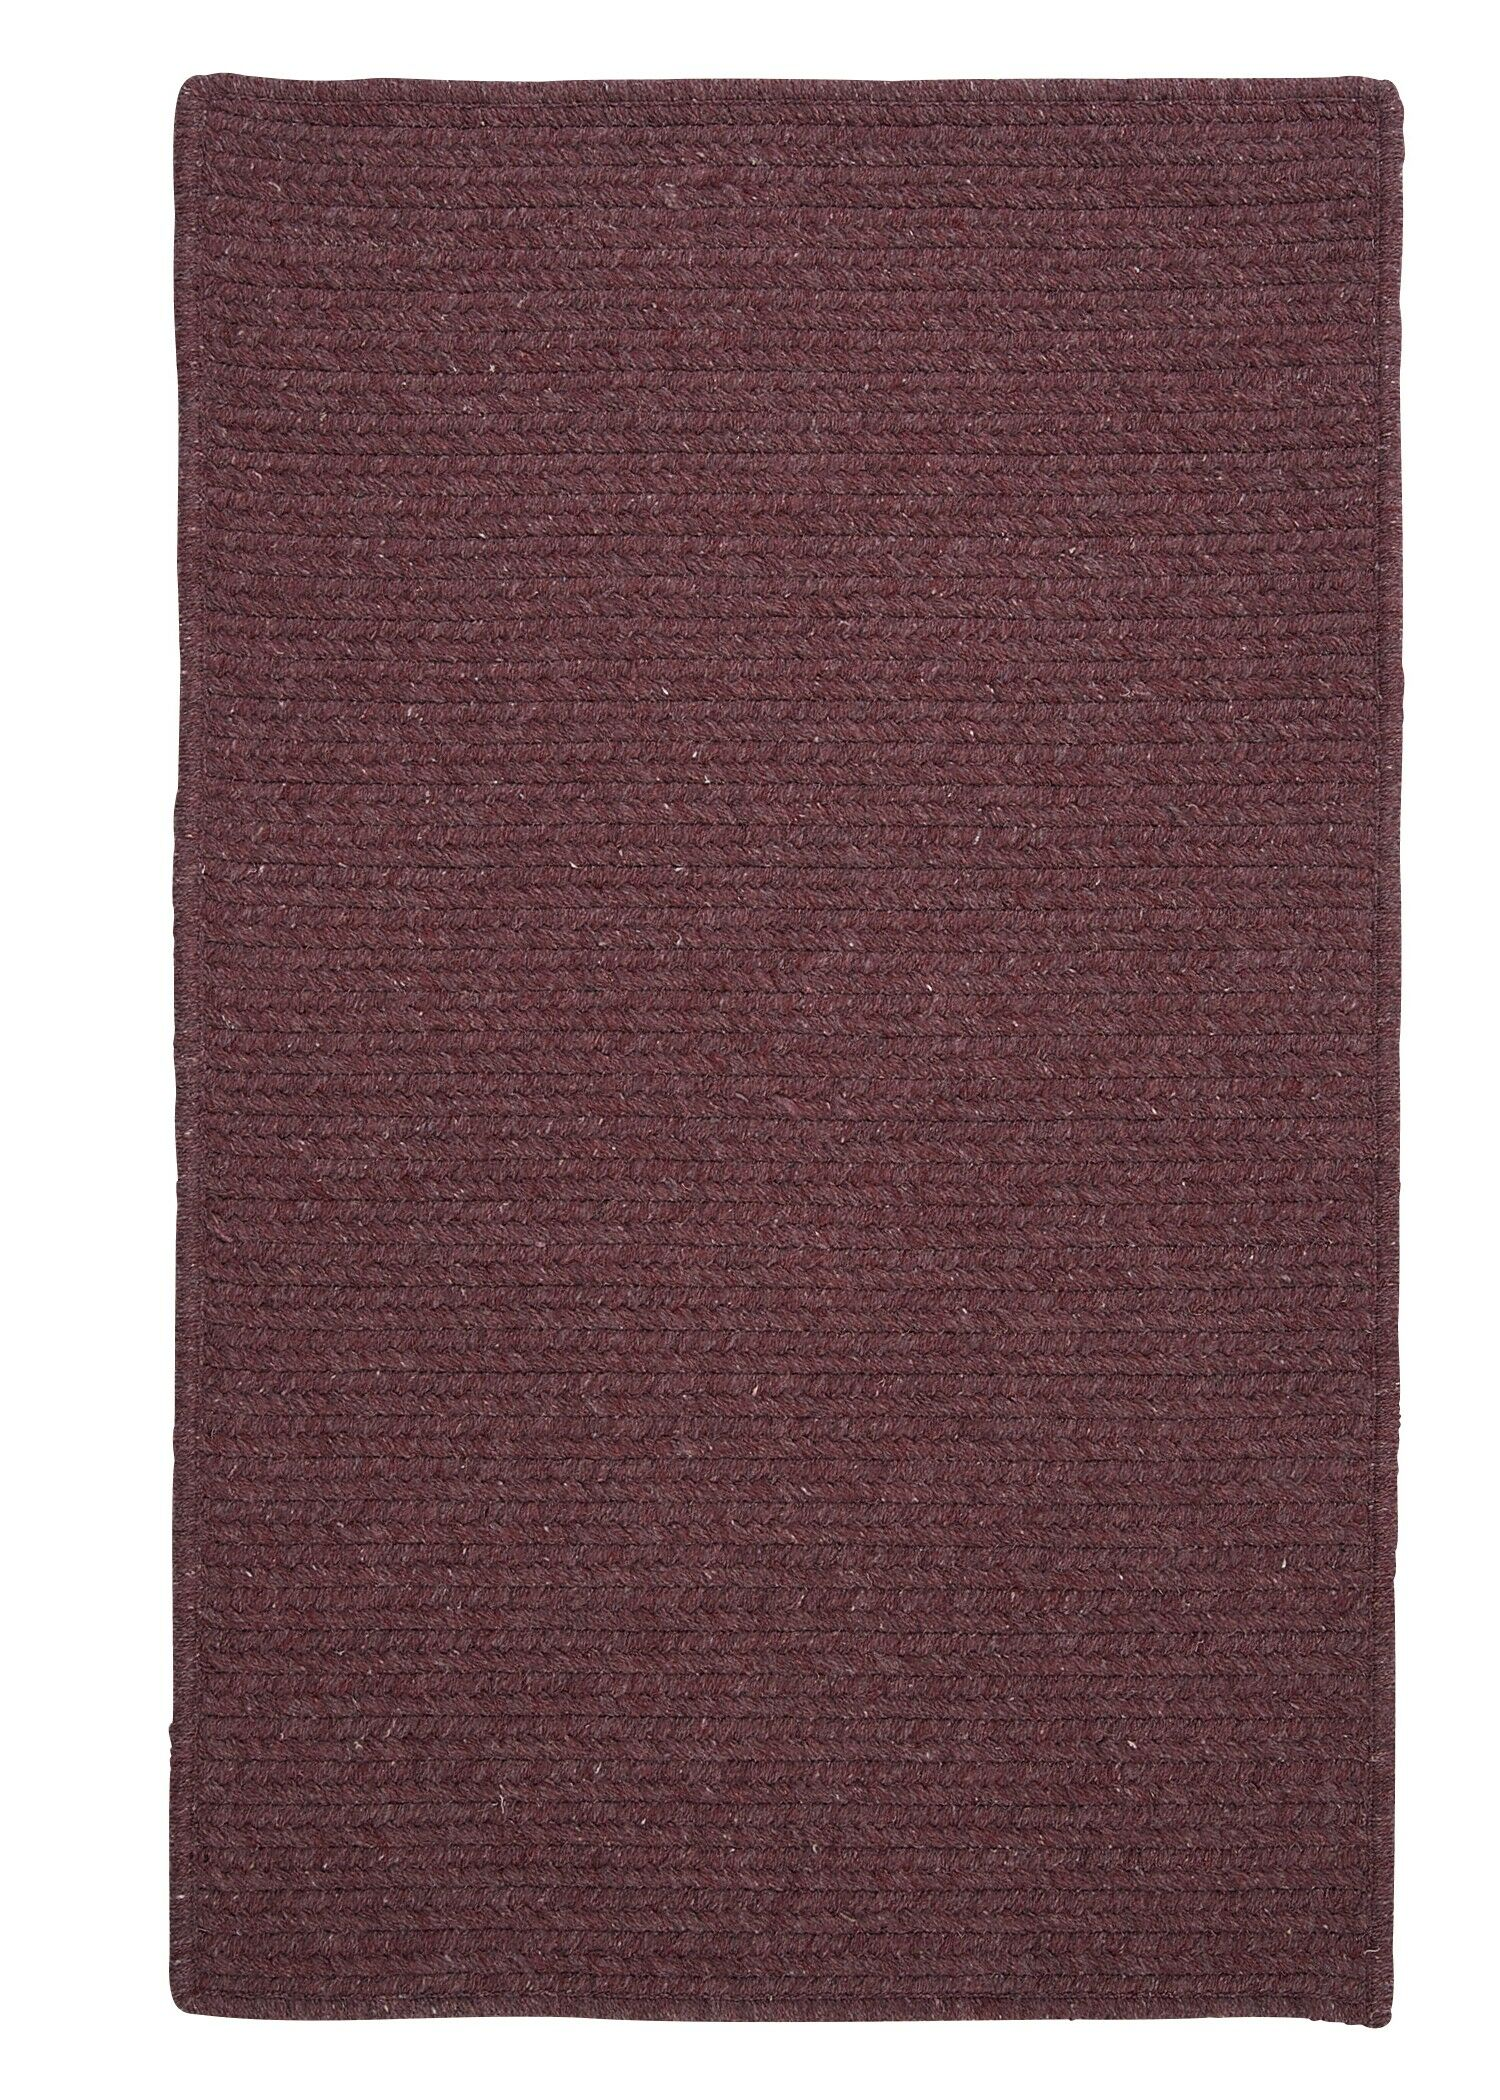 Courtyard Orchid Rug Fringe: Not Included, Rug Size: Runner 2' x 6'